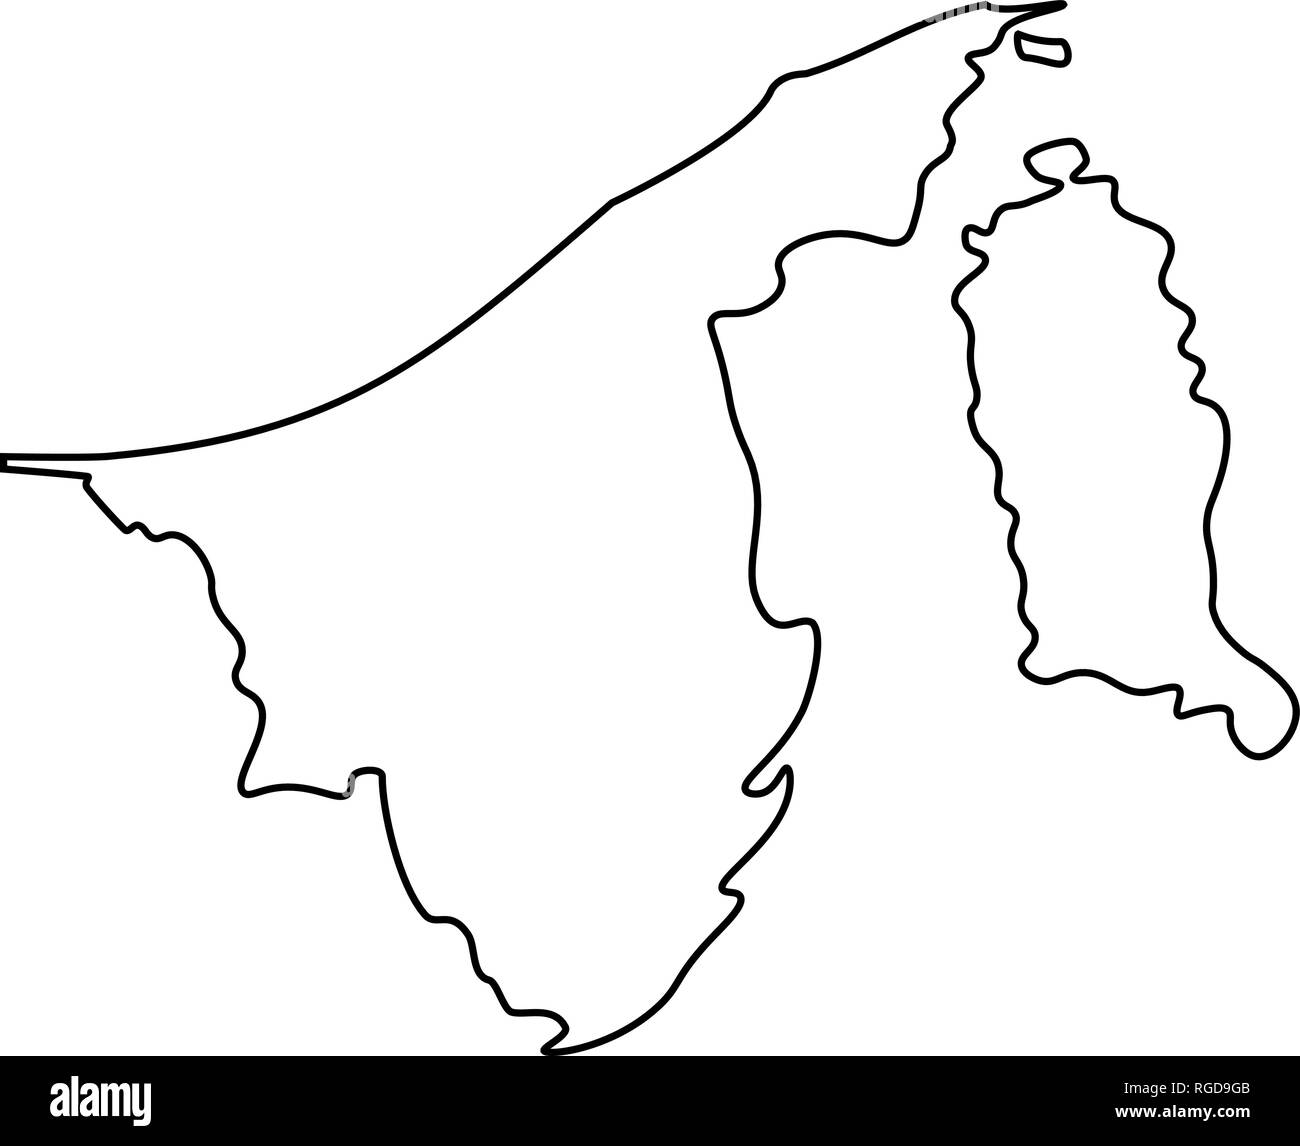 Map of Brunei - outline. Silhouette of Brunei map vector illustration - Stock Image